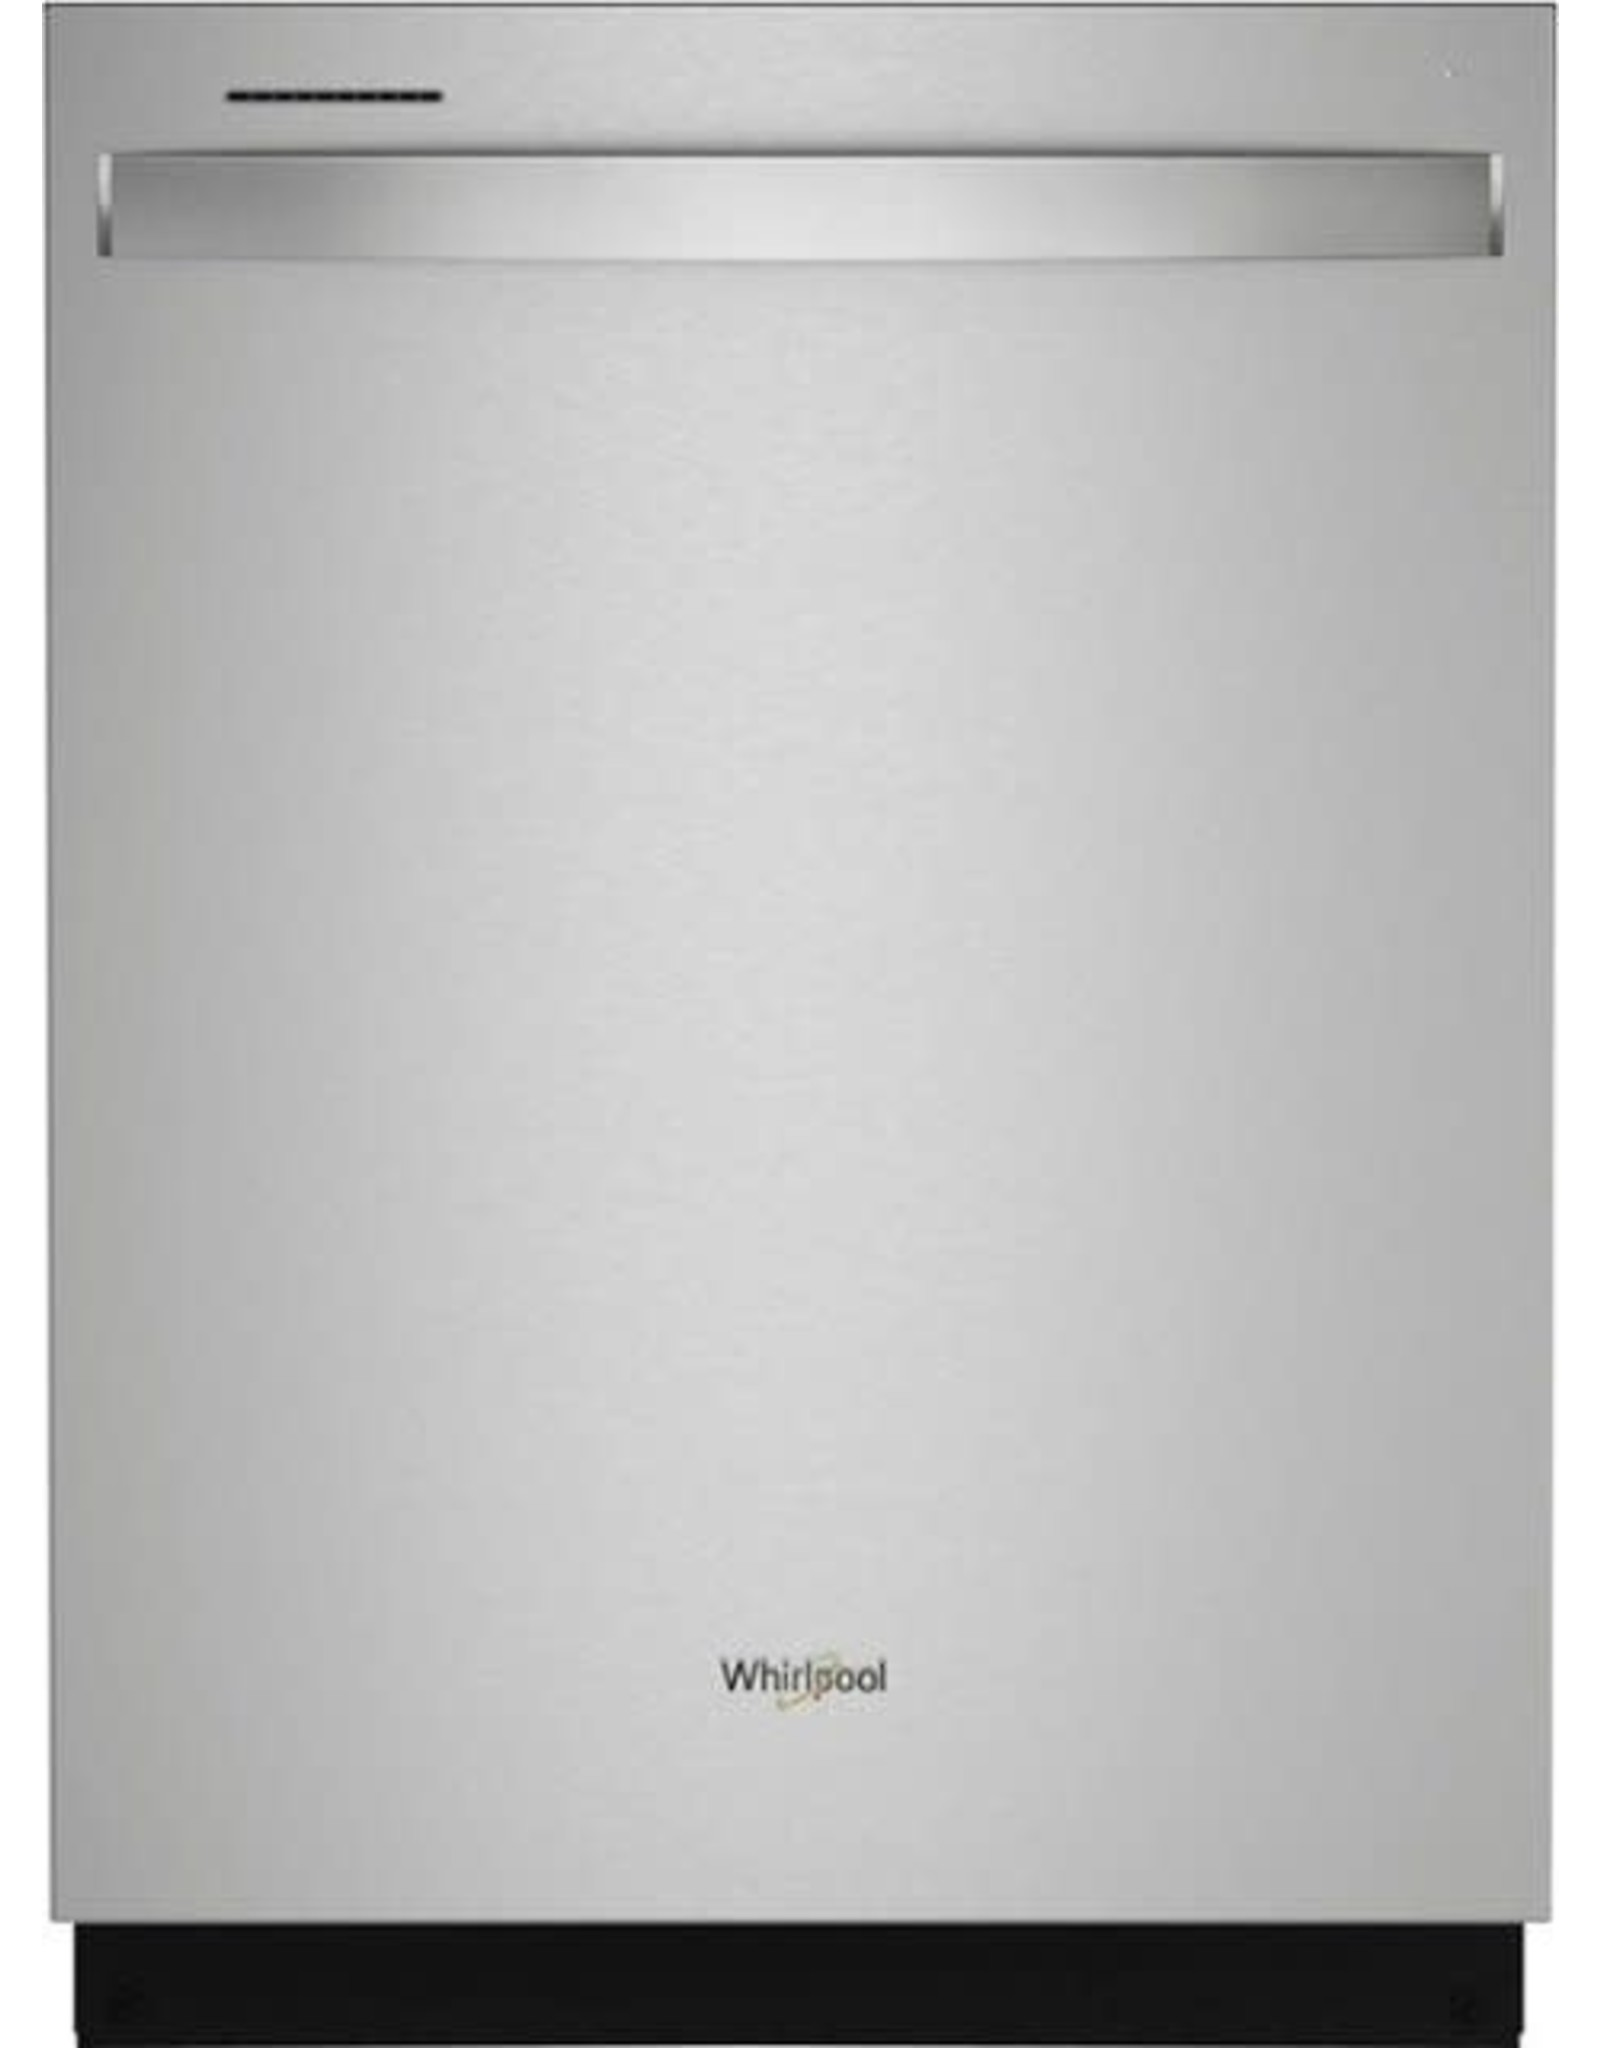 """WHIRLPOOL WTD750SAKZ Whirlpool - 24"""" Top Control Built-In Dishwasher with Stainless Steel Tub, Large Capacity, 3rd Rack, 47 dBA - Fingerprint Resistant Stainless Steel"""